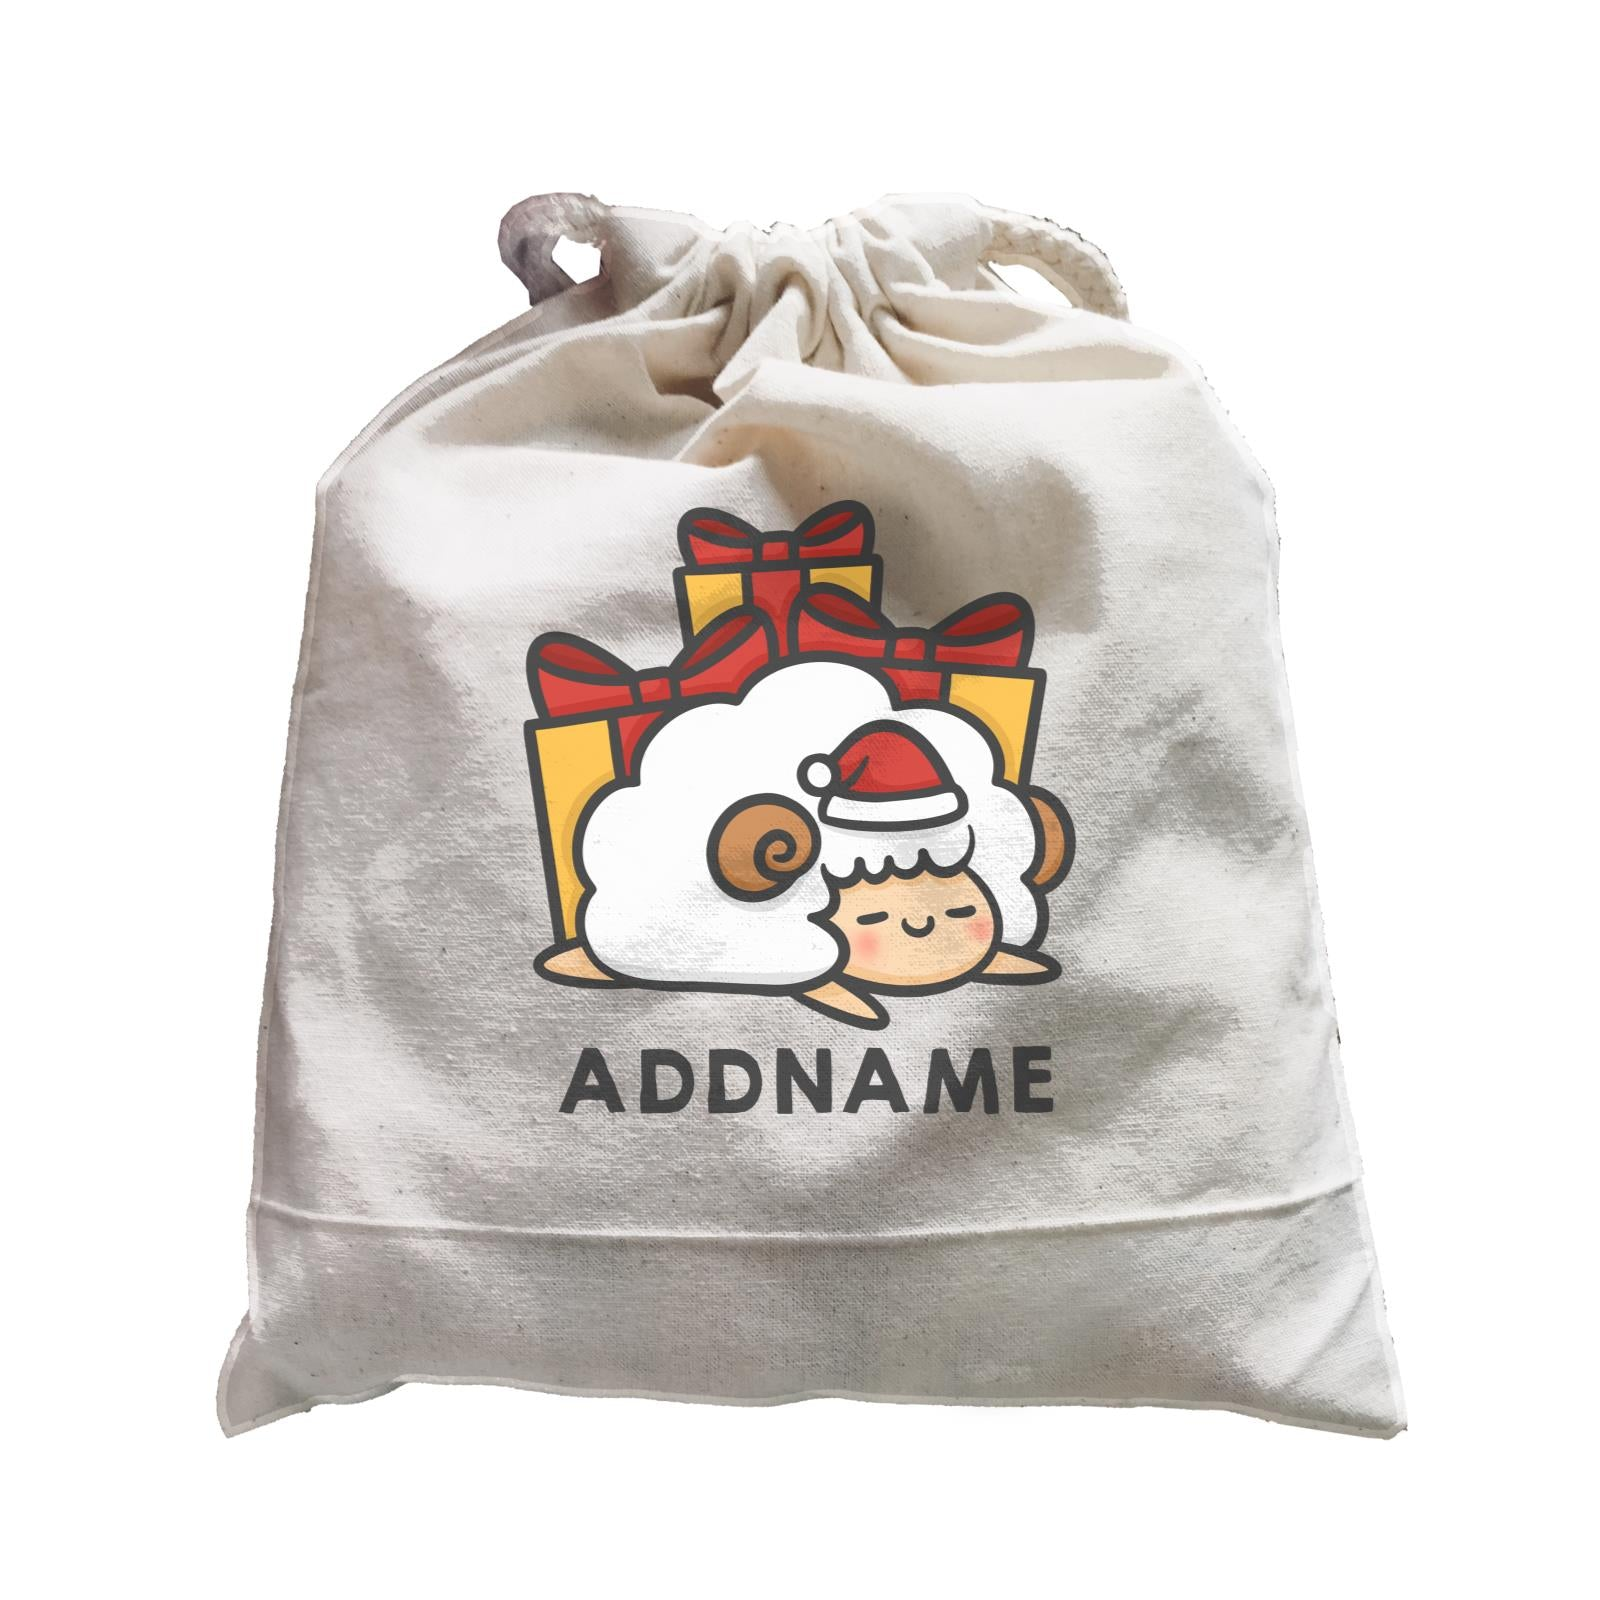 Xmas Cute Sleeping Sheep Addname Accessories Satchel